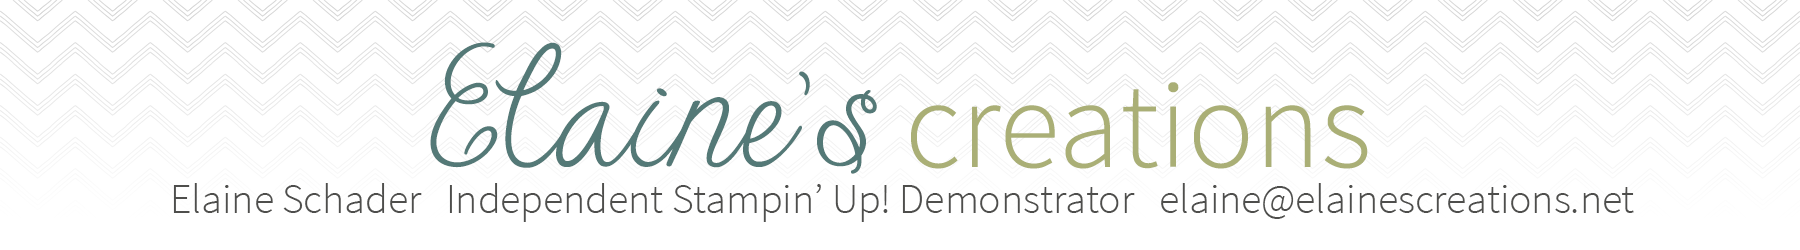 Elaine's Creations Independent Stampin' Up! Demonstrator